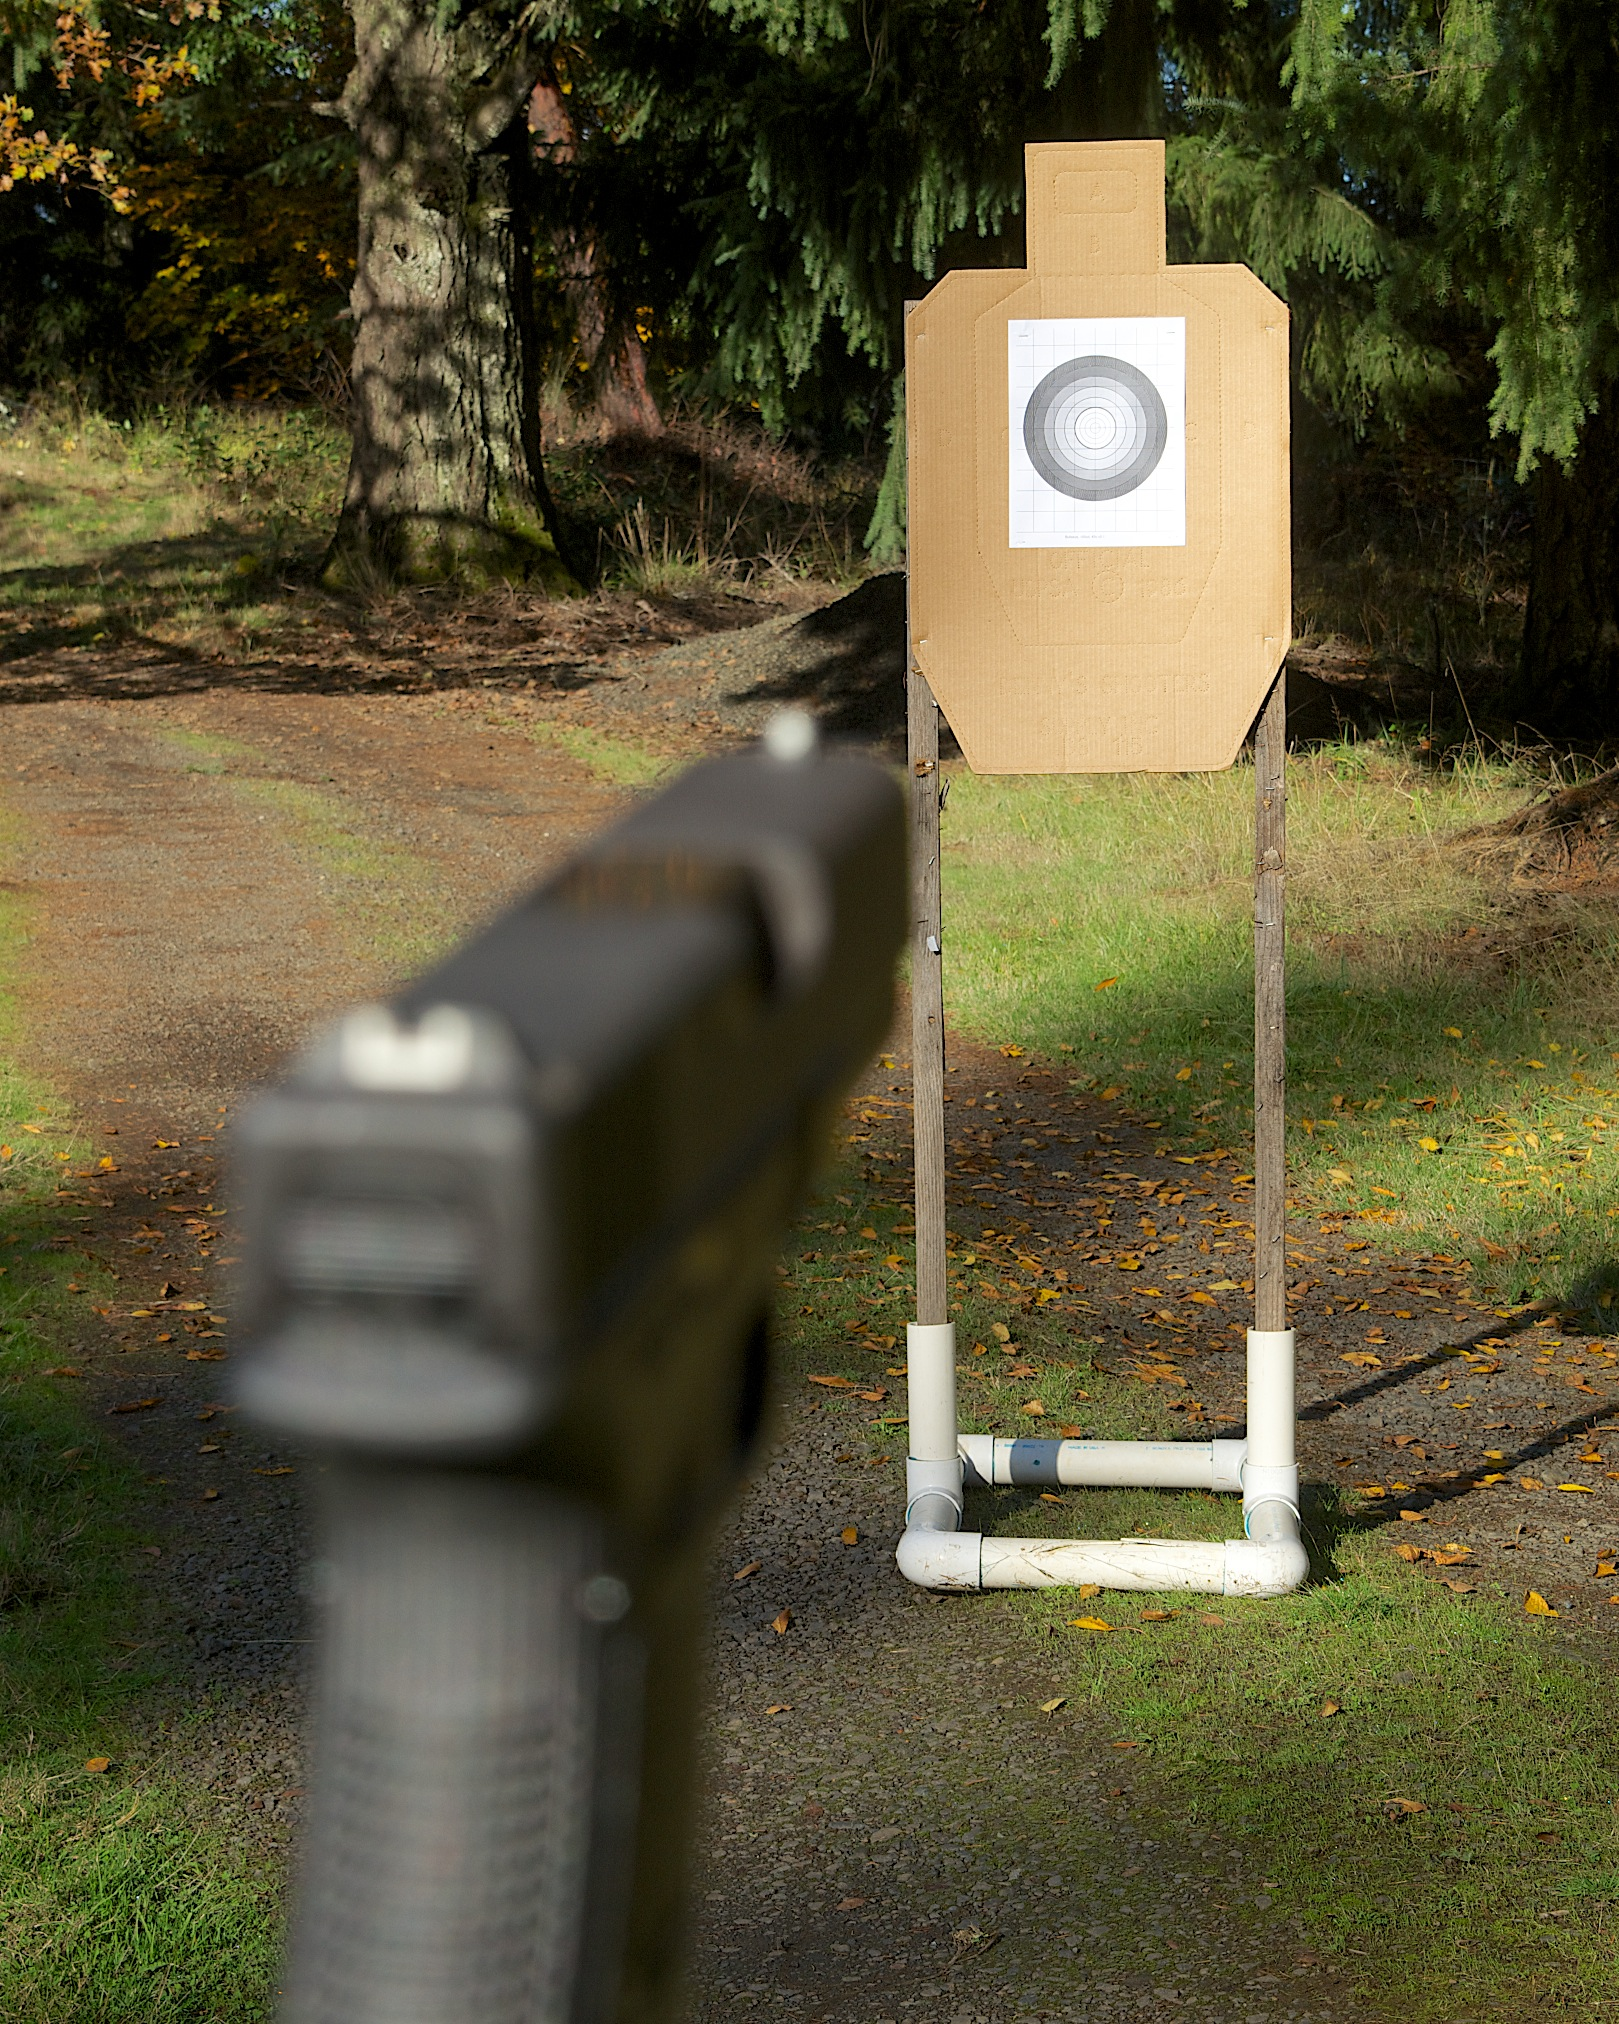 Image of blurred gun sight and clear target